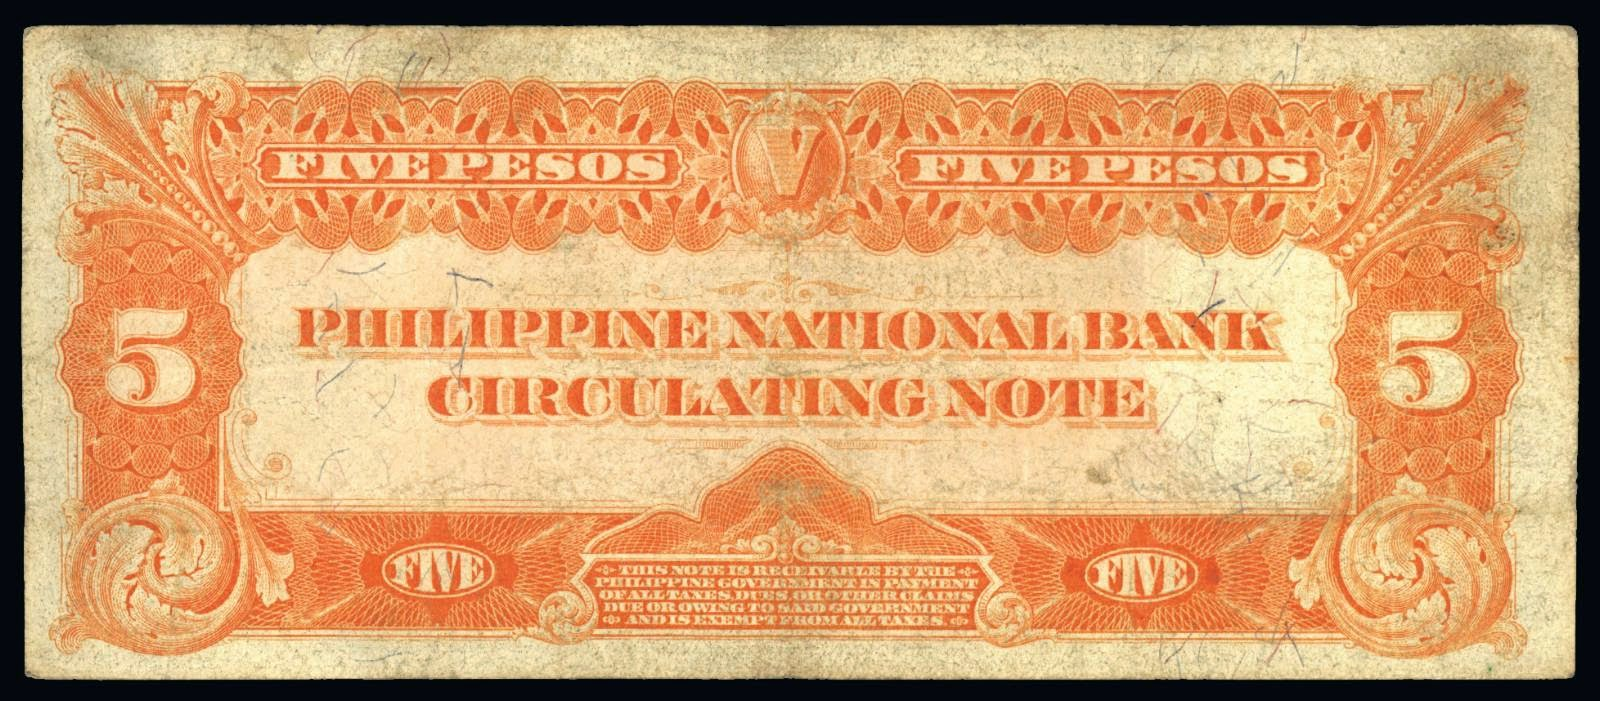 FIVE PESOS - PHILIPPINE NATIONAL BANK CIRCULATING NOTE